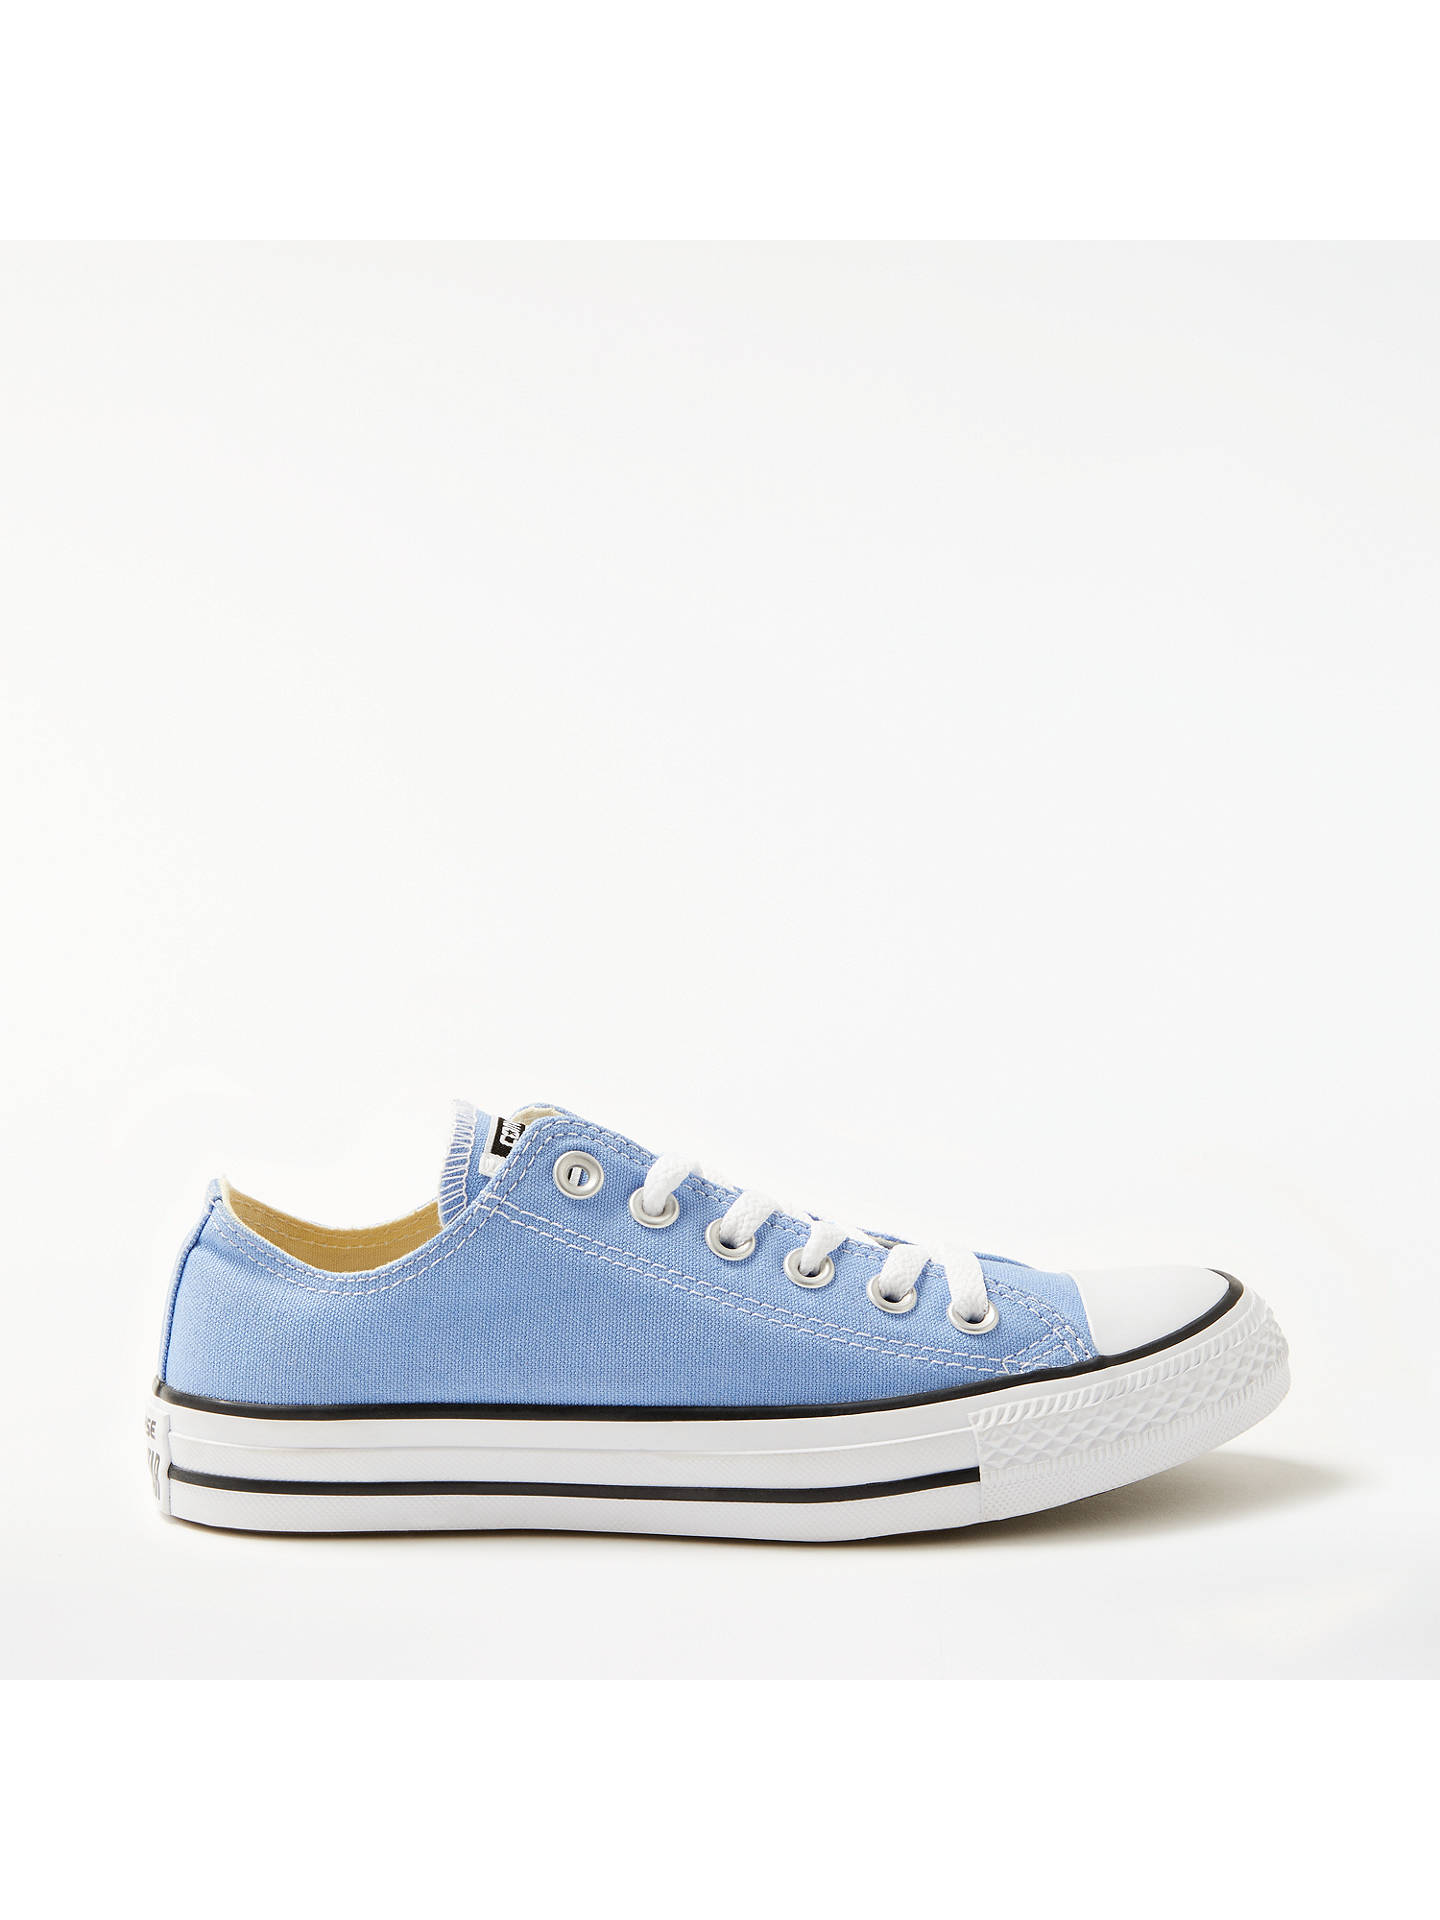 Converse Chuck Taylor All Star Women s Canvas Ox Low-Top Trainers at ... 5864ba4bd